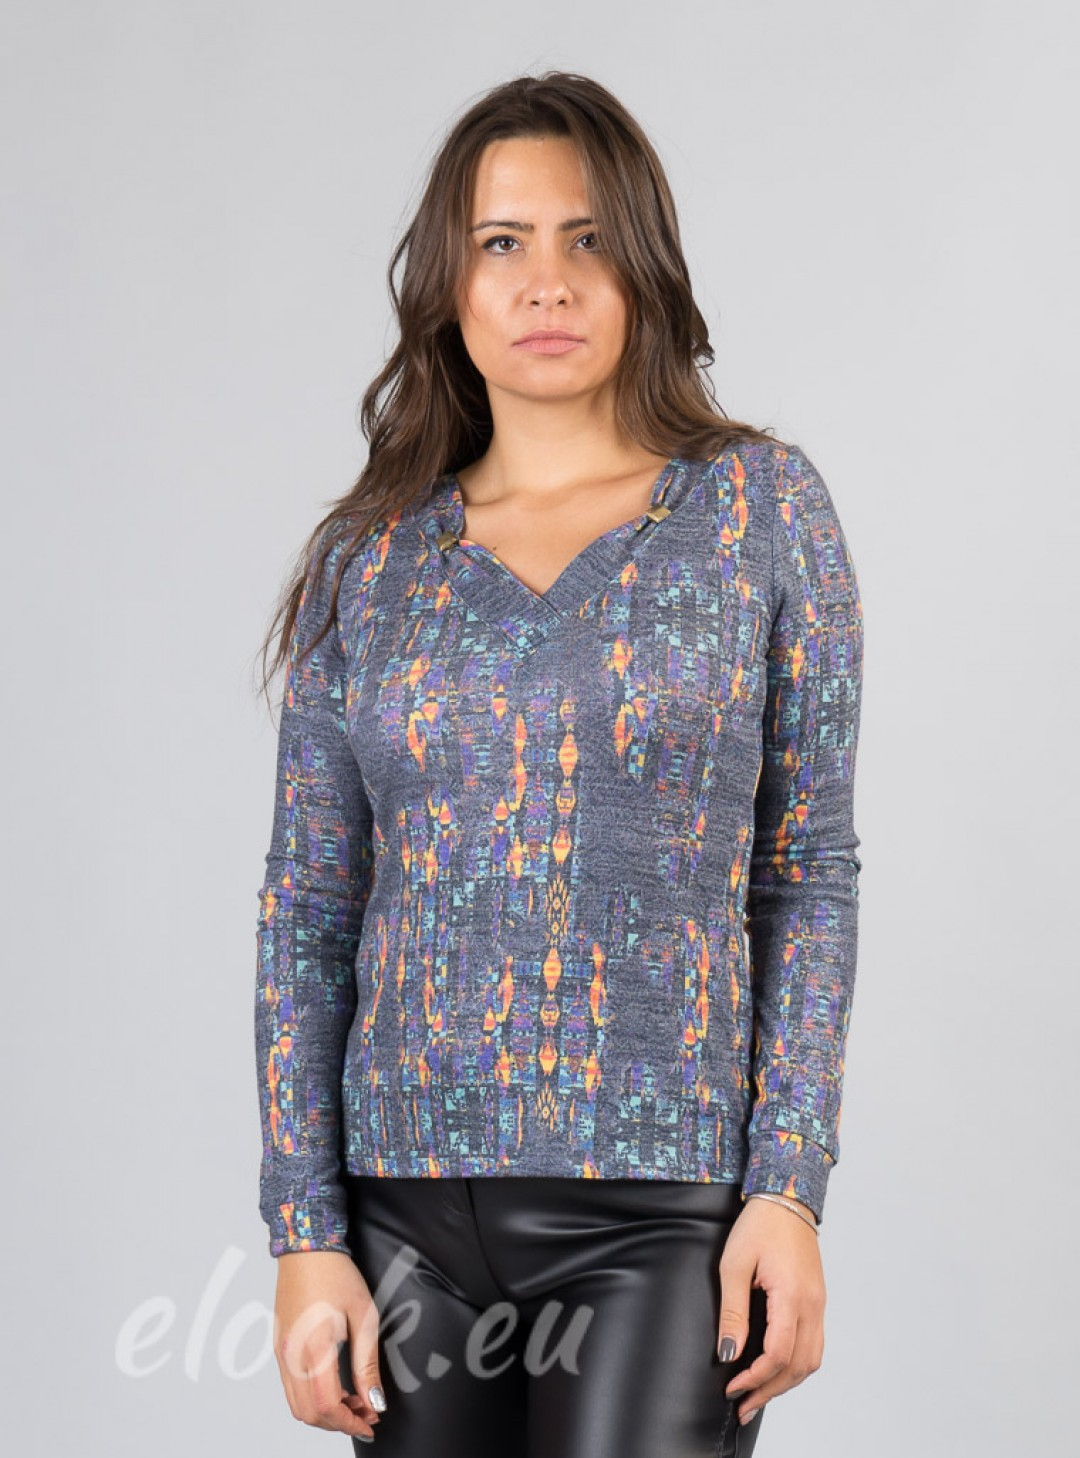 Blouse abstract painted patter...